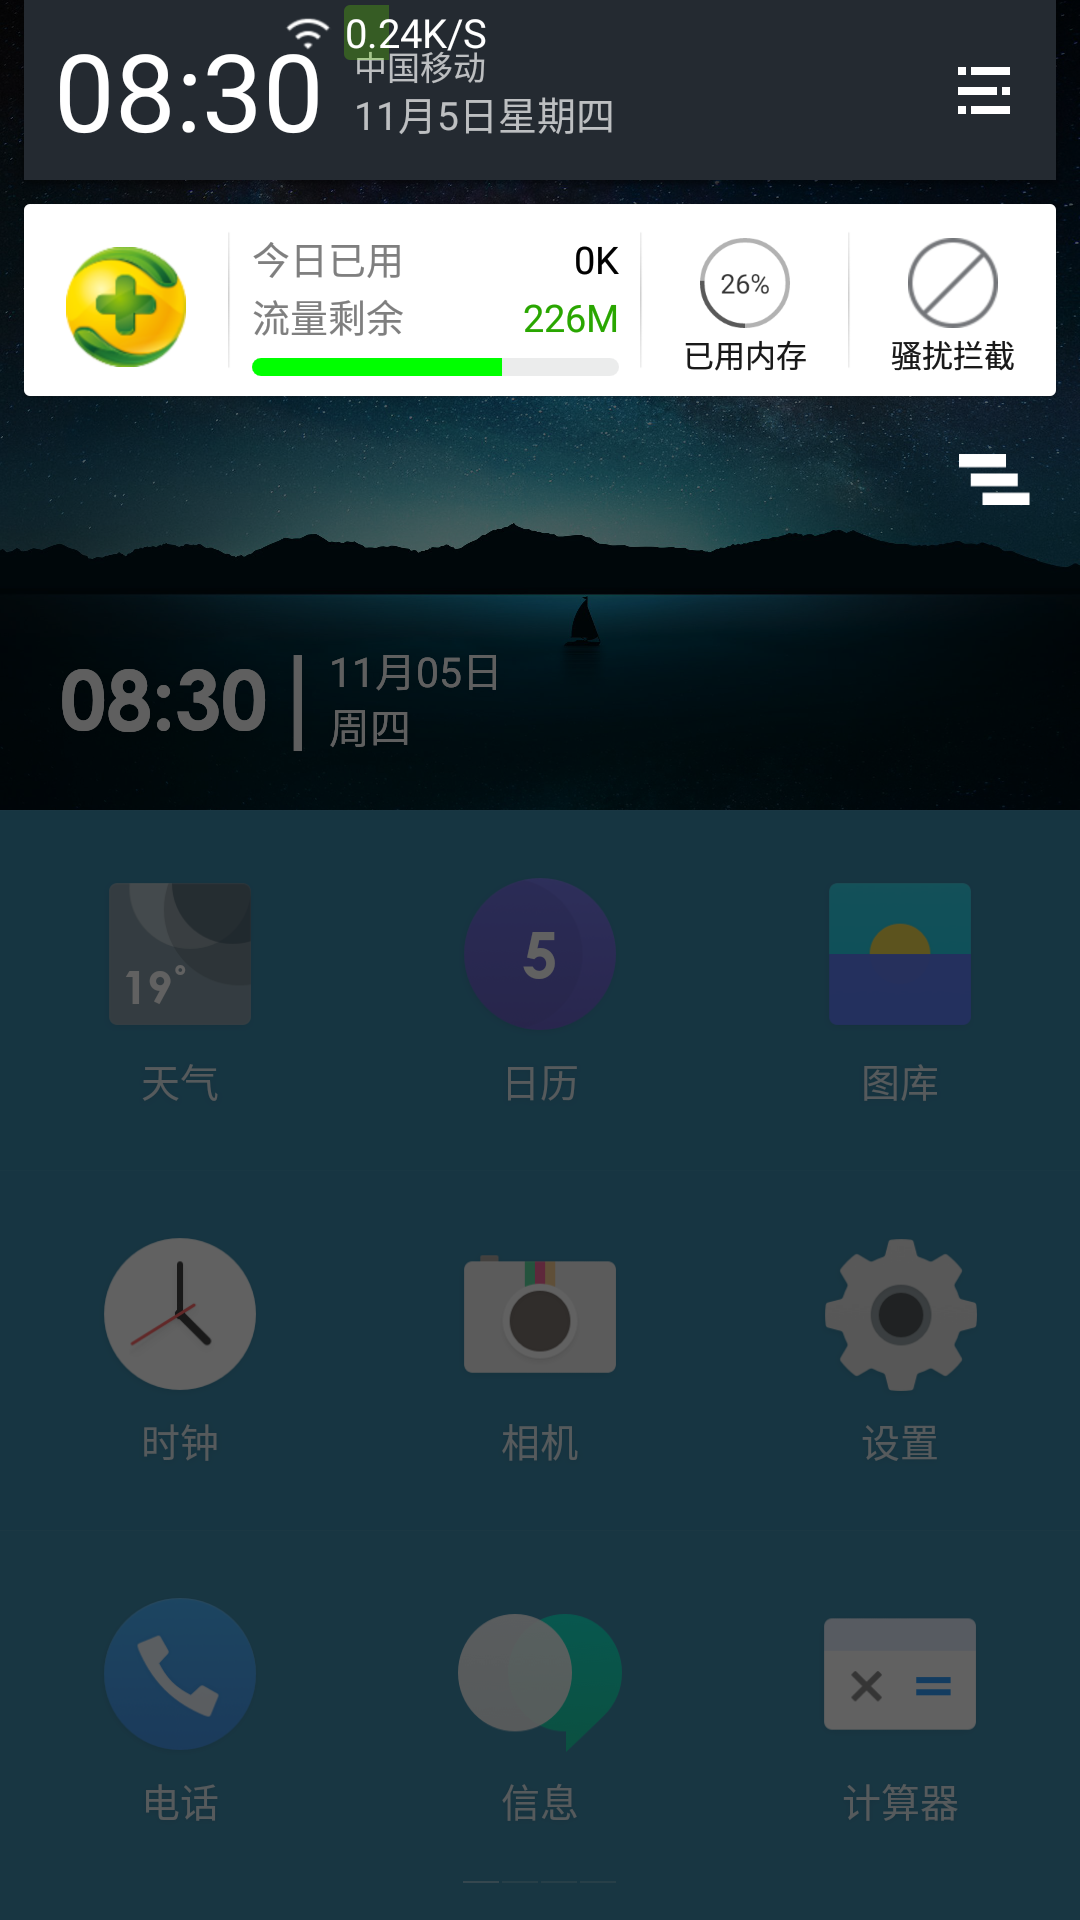 Screenshot_2015-11-05-08-30-53.png